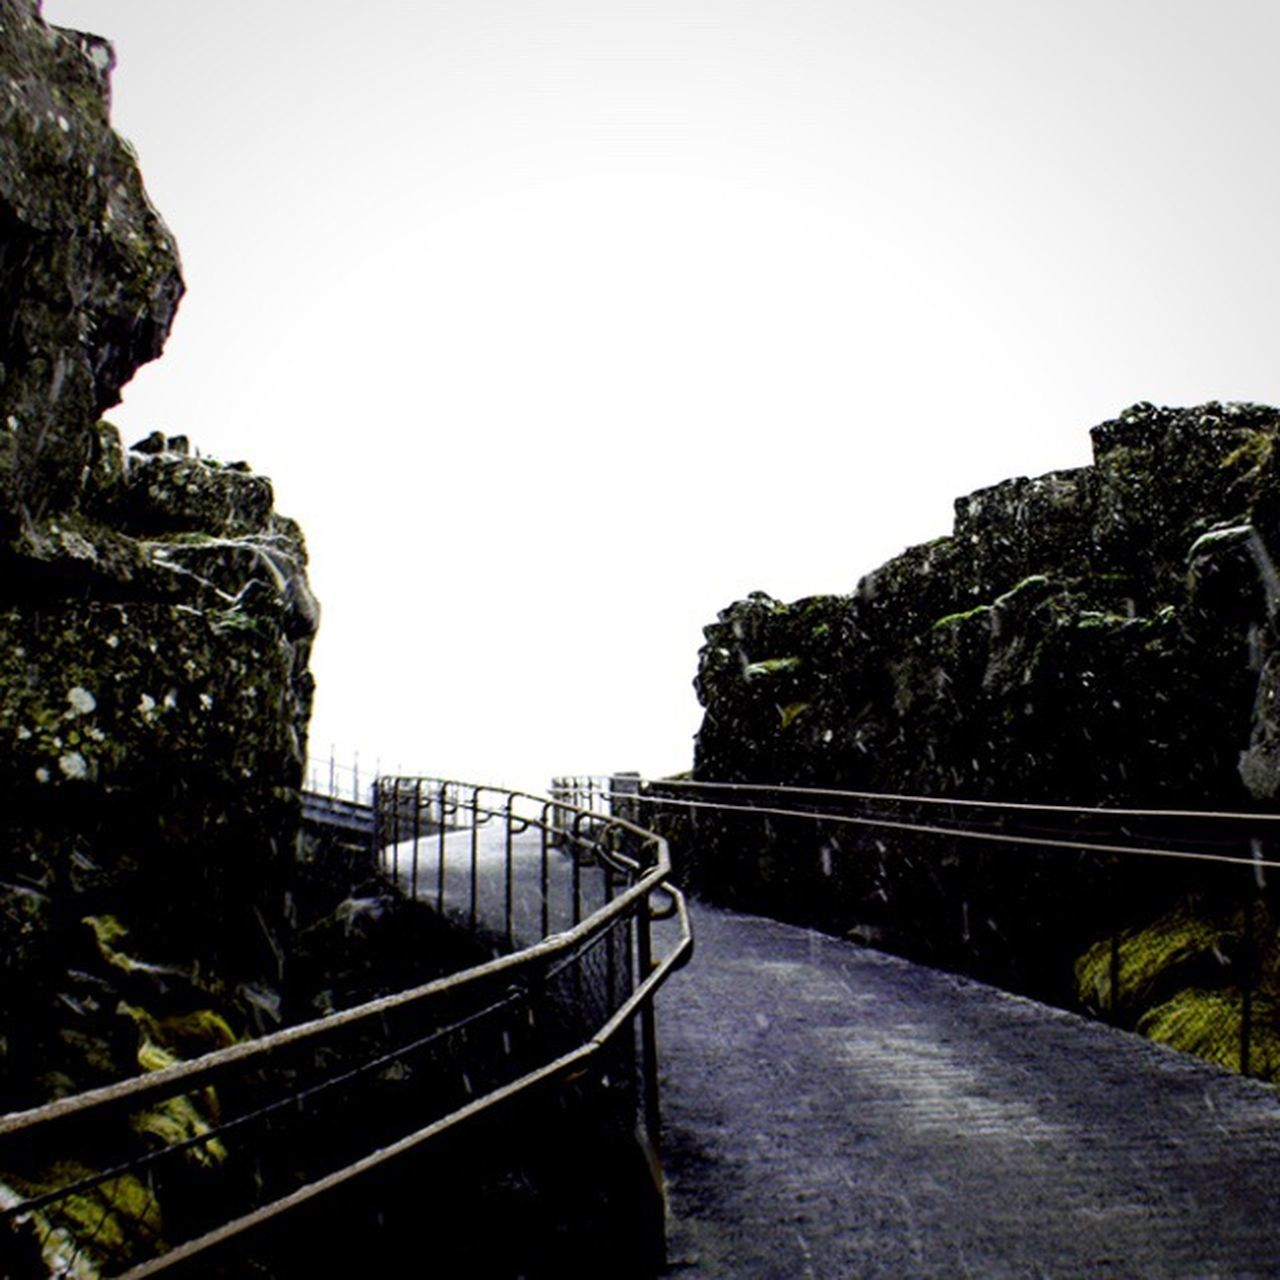 Railing Outdoors Nature No People Day Scenics Beauty In Nature Sky Water Tectonic Tectonicplate Iceland Iceland_collection Iceland Memories Iceland Trip Pingvellir Thingvellir National Park Minimalism Minimal Minimalobsession Path Gloomy Open Edit Cold Temperature Winter